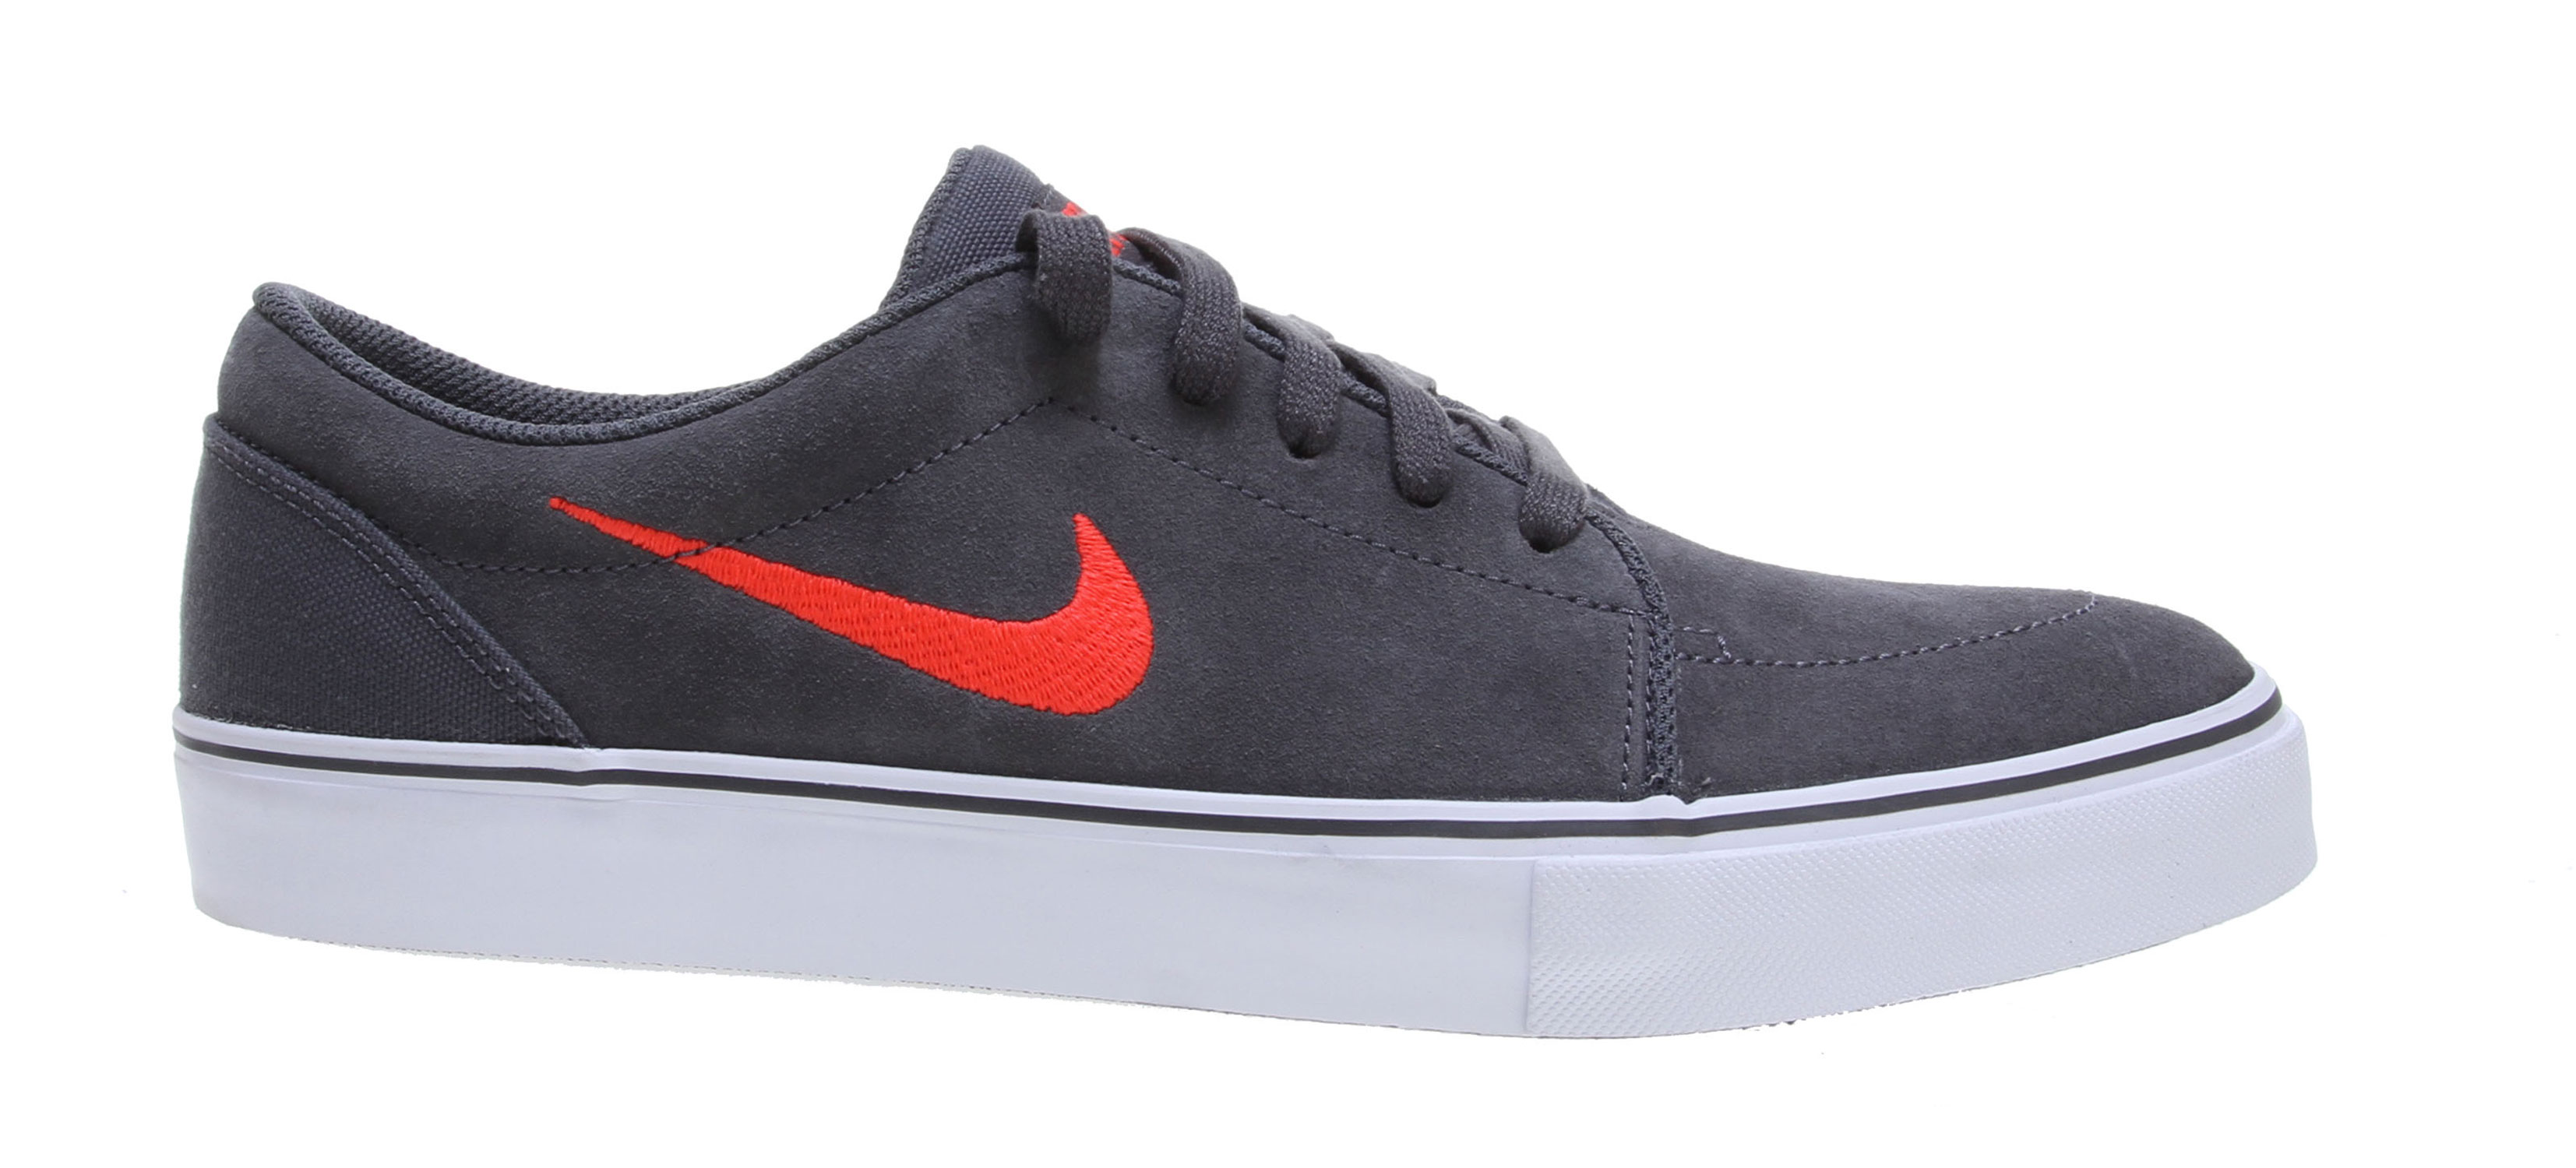 Skateboard Classic minimal skate silhouette. Key Features of the Nike Satire Skate Shoes: Suede, leather, and Nubuck materials. Vulcanized construction for comfort and boardfeel. Flexible vulcanized construction with a tacky gum rubber outsole. - $65.00